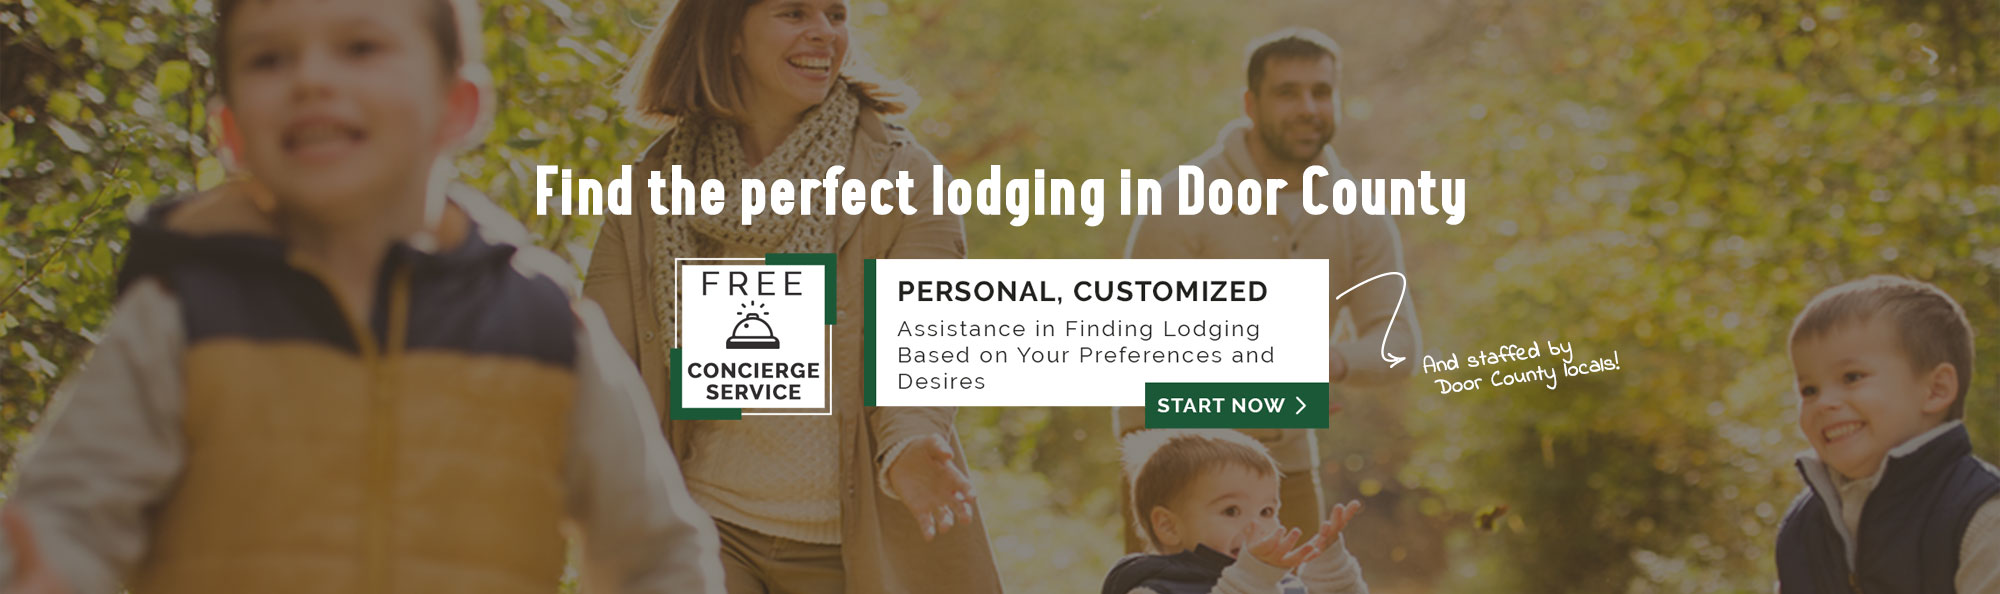 find the perfect lodging in door county free concierge service